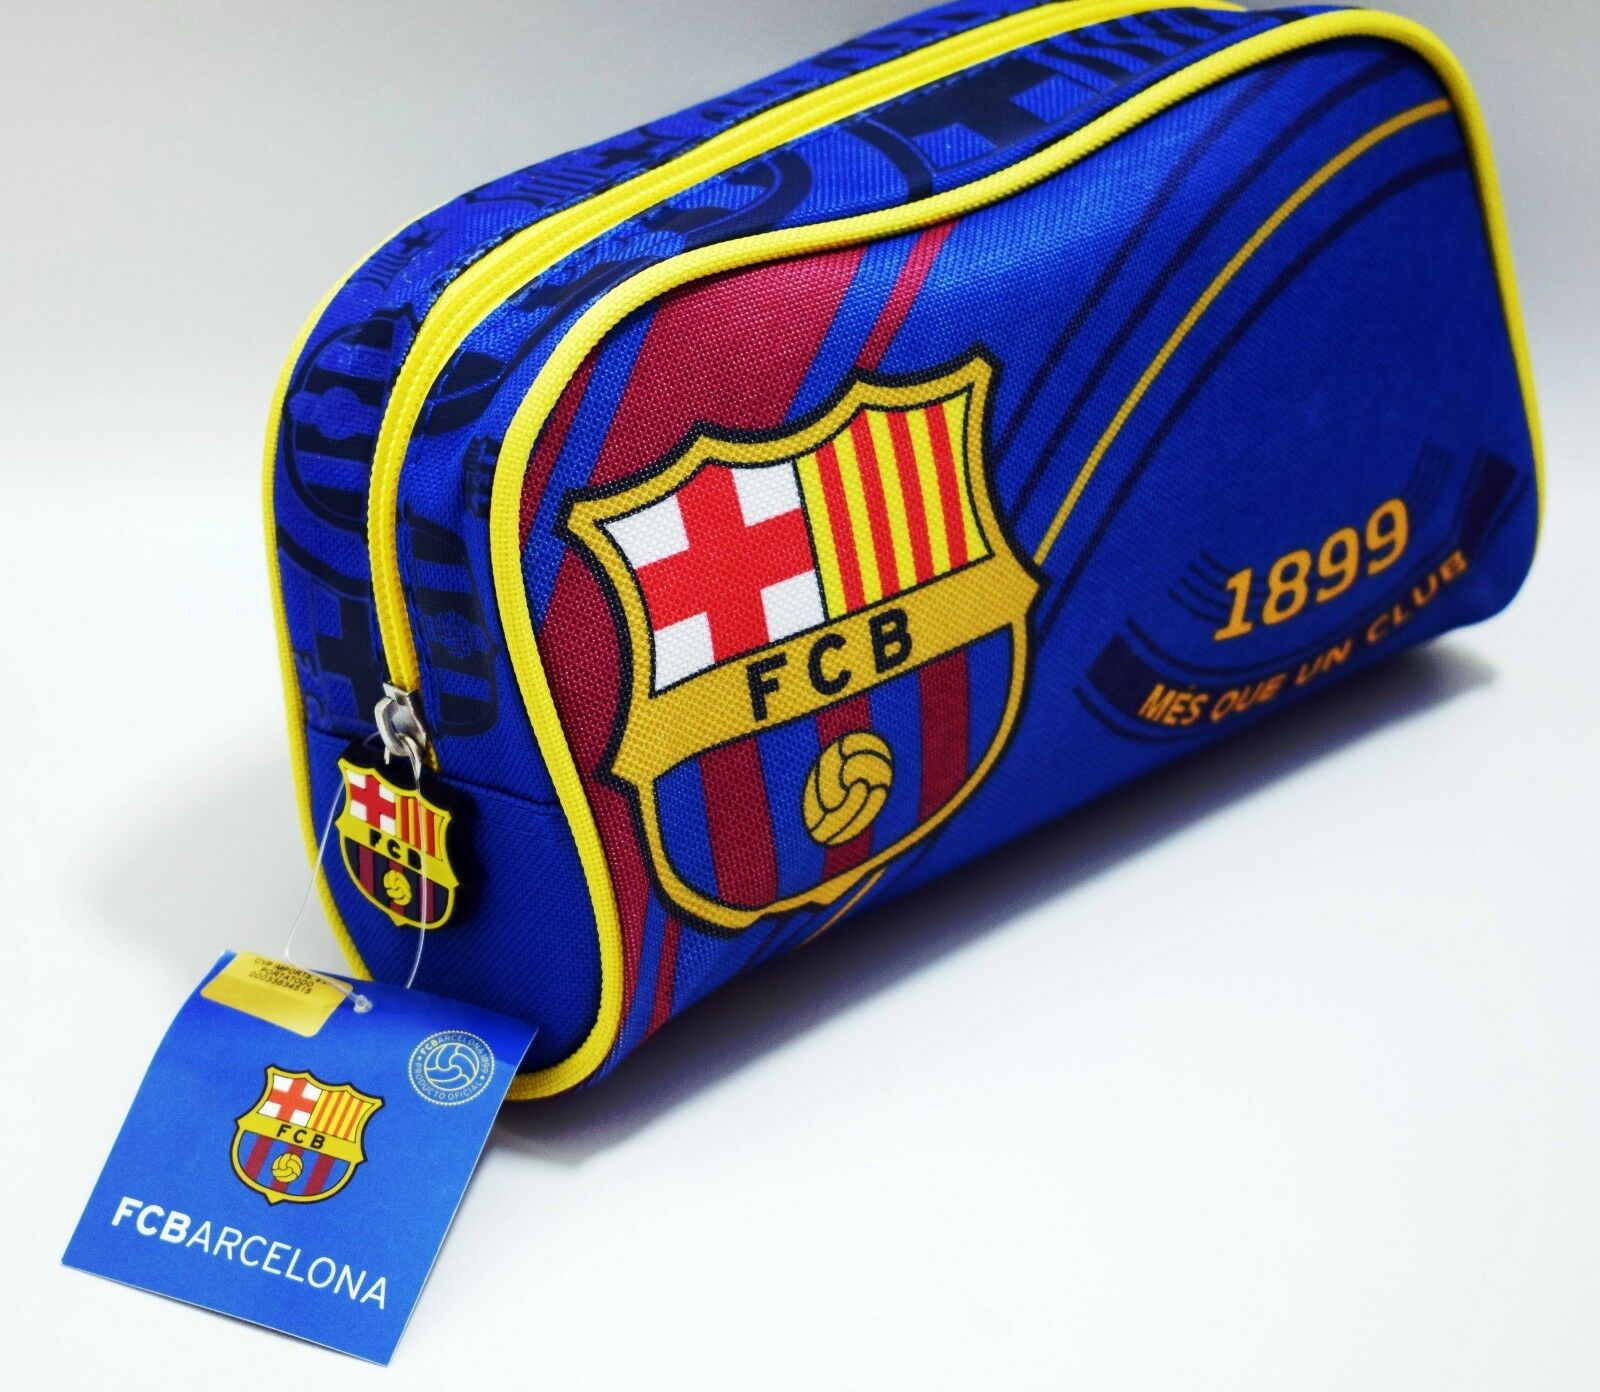 FC BARCELONA Pencil Case 100/% Official FCB Products Choice of Designs BARCA !